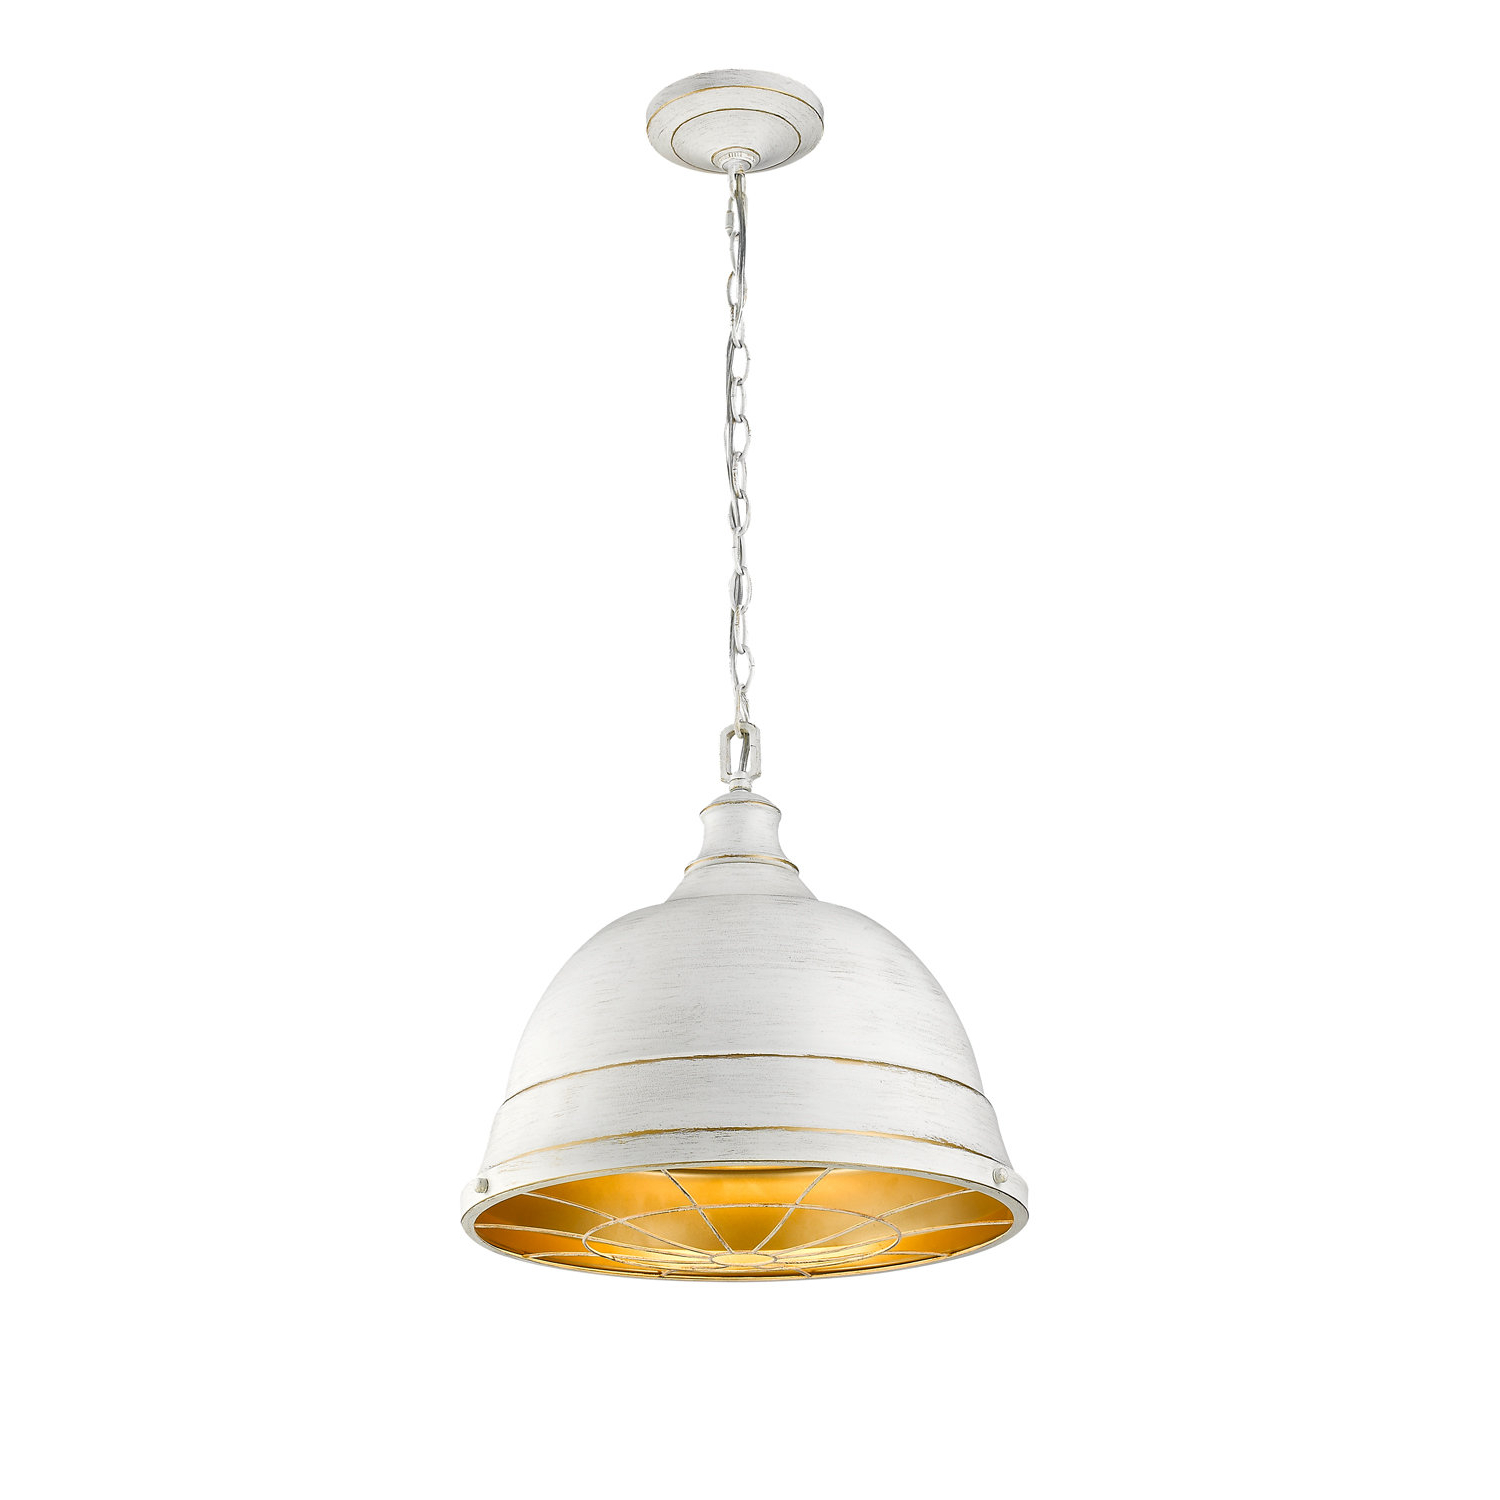 Amara 2 Light Dome Pendants With Regard To Most Recent Beachcrest Home Elinna 2 Light Dome Pendant (View 7 of 20)